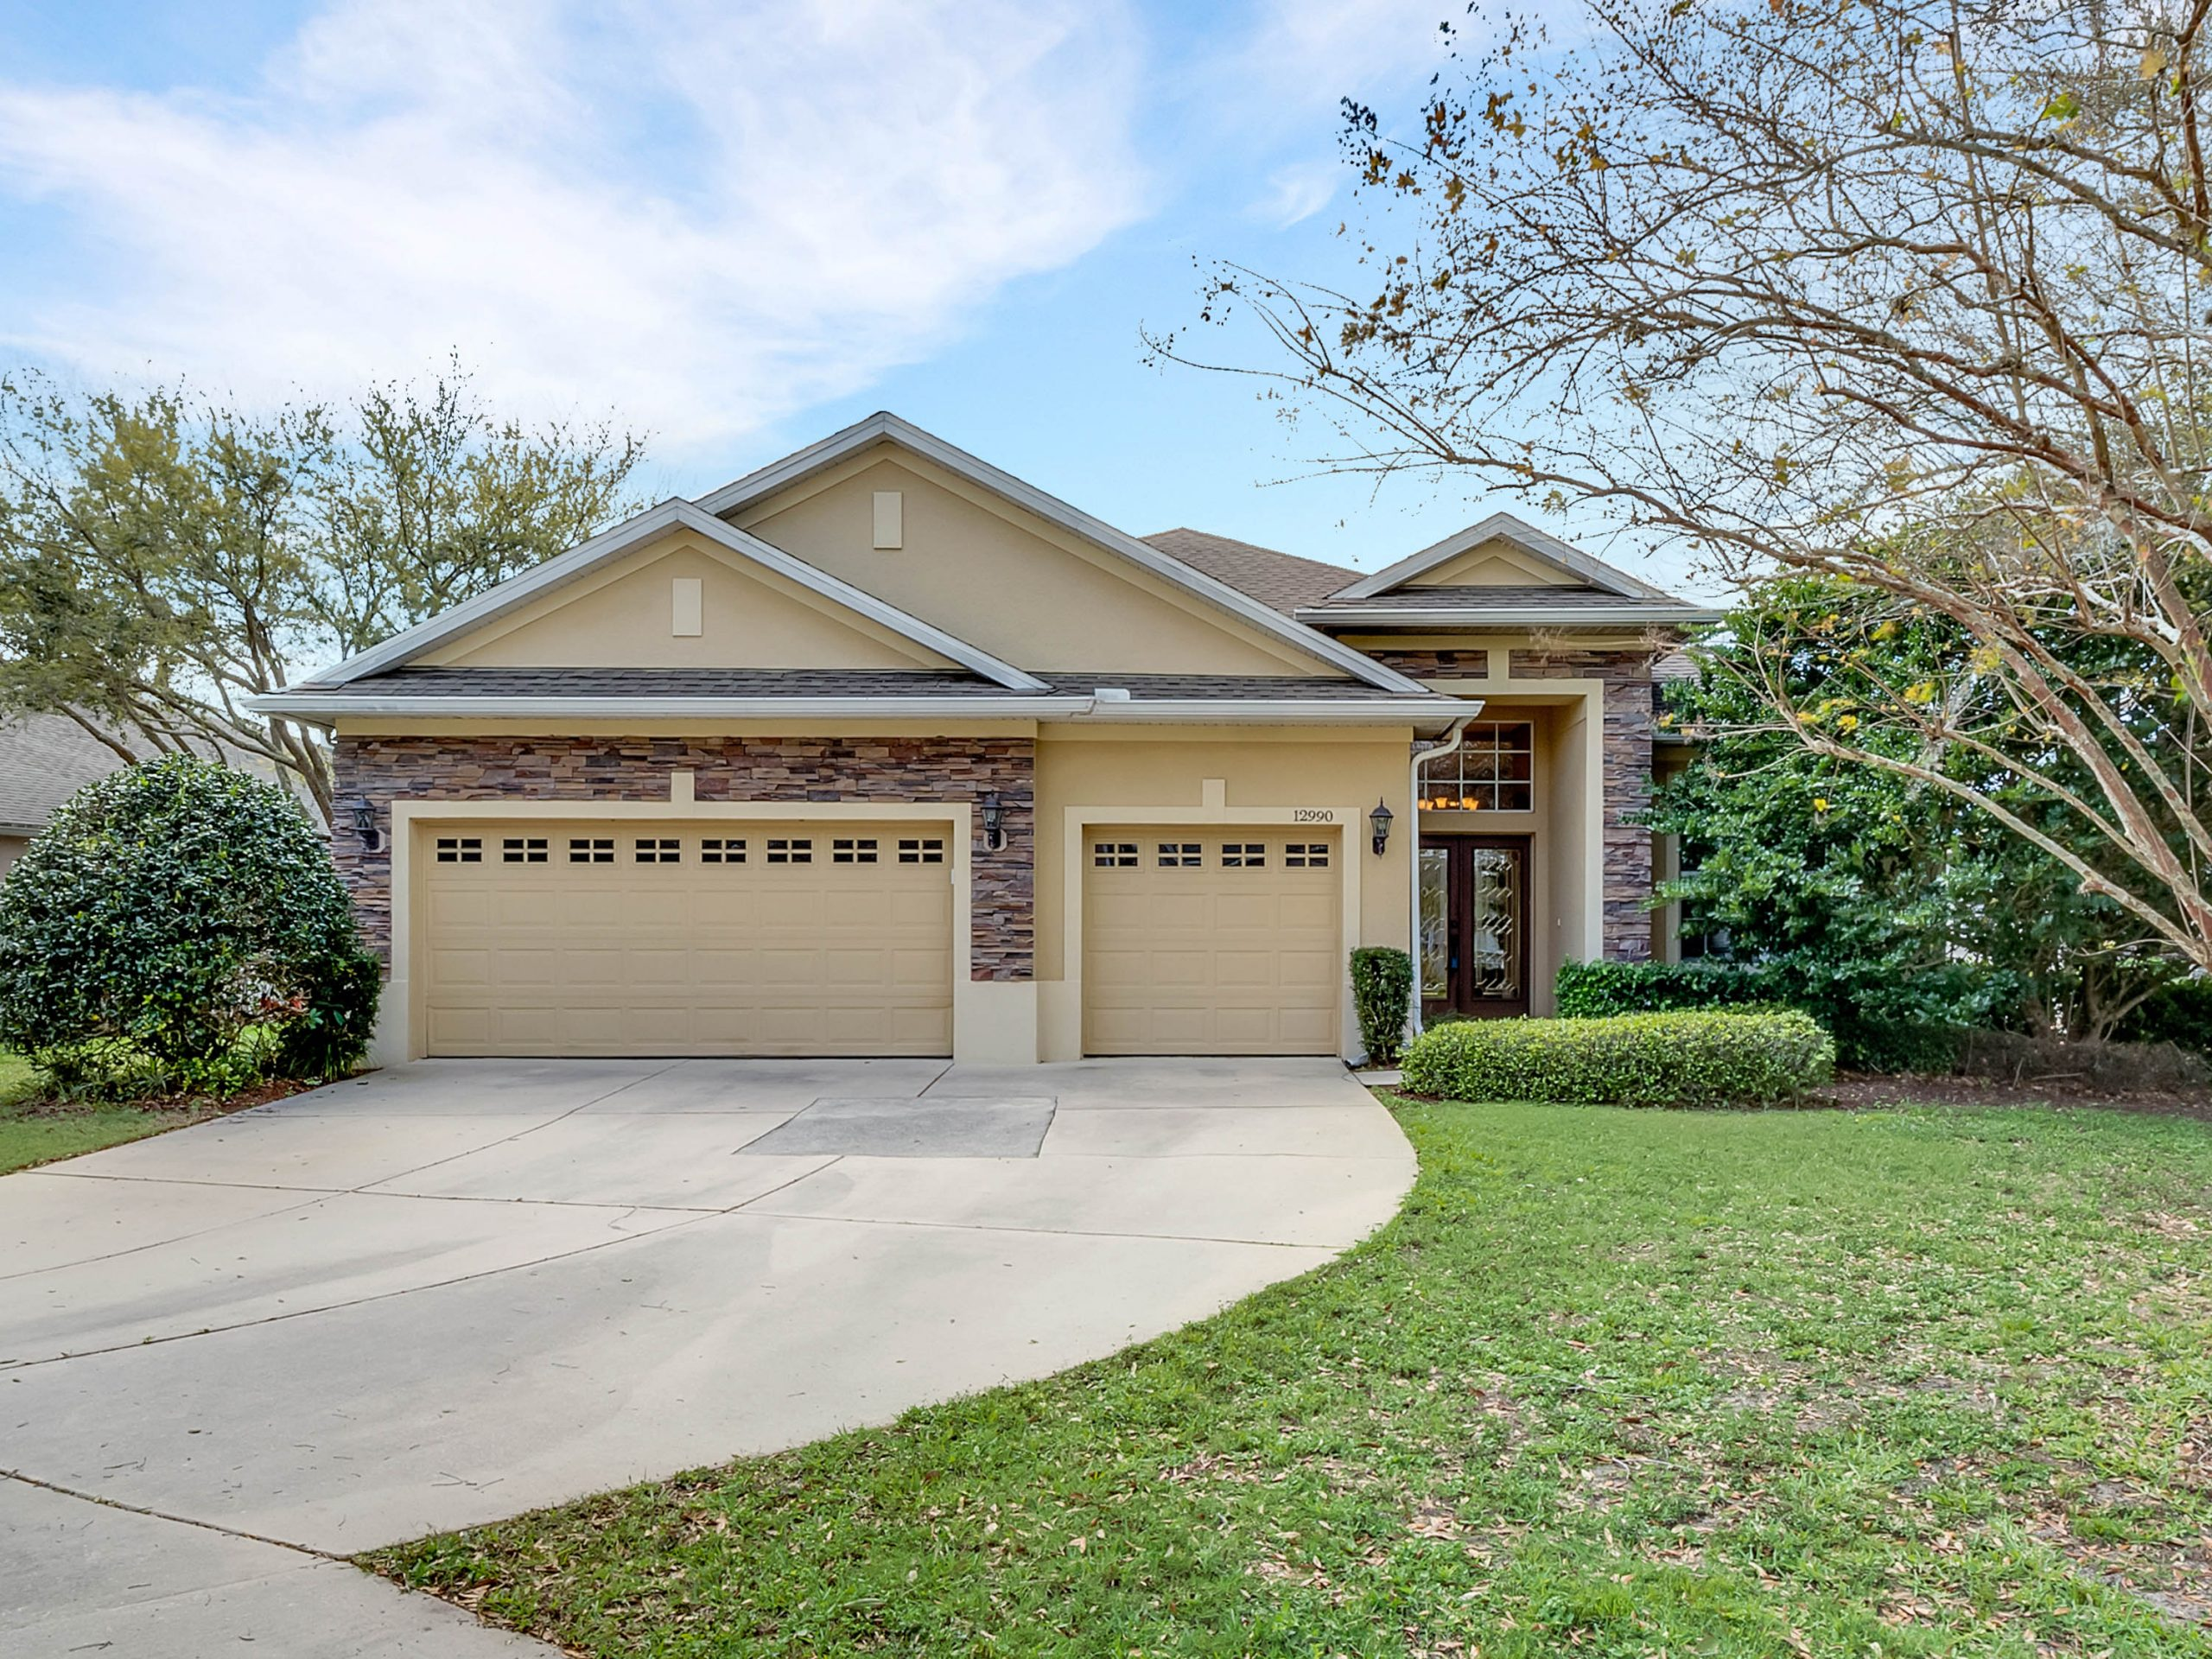 Hunter's Creek Newest Home Listing Checks Off Everyone's Must-Haves